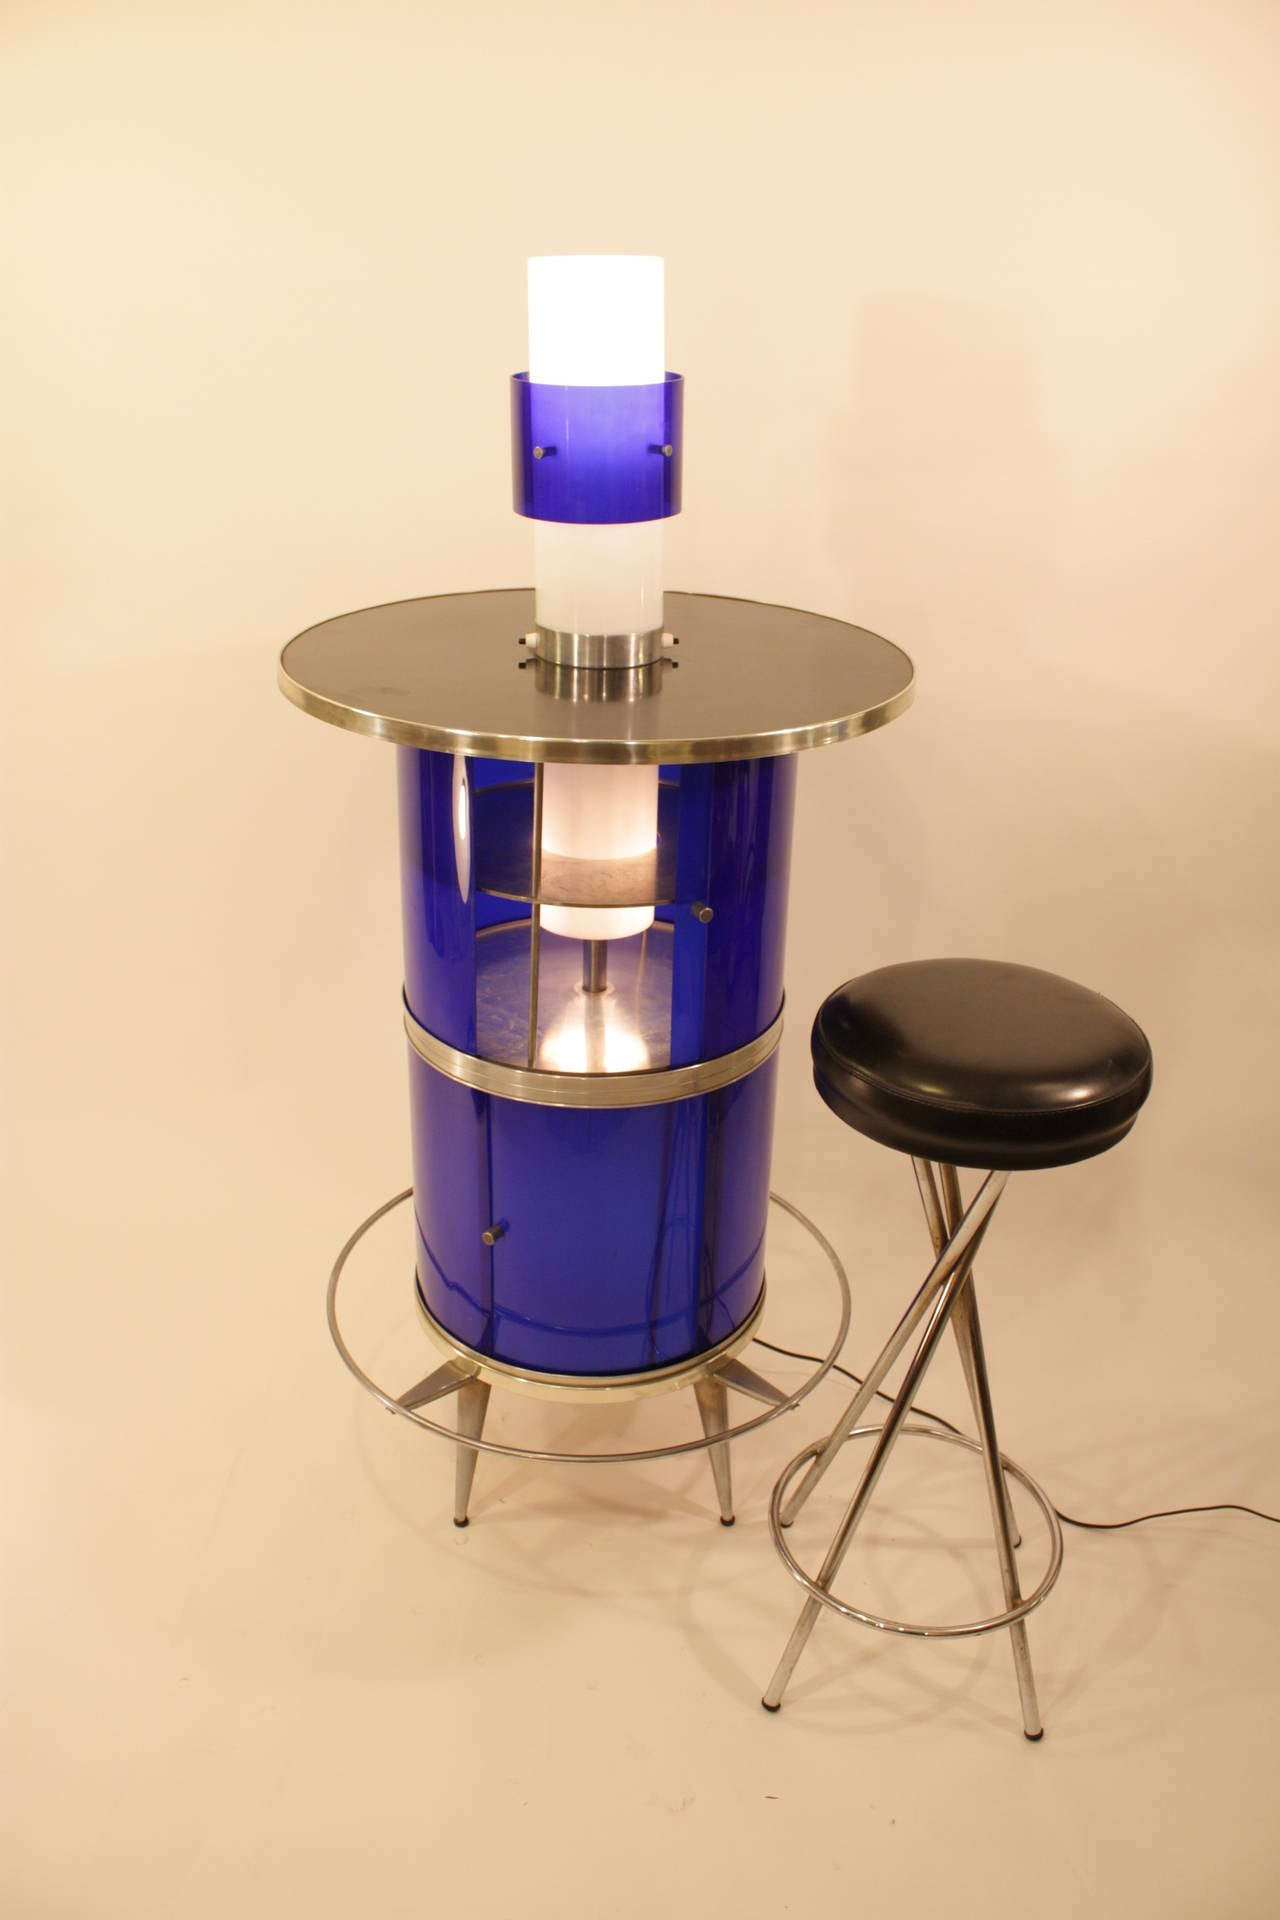 Spanish 1960s Space Age Blue and White Plexiglass Cocktails Bar with Table Lamp 2